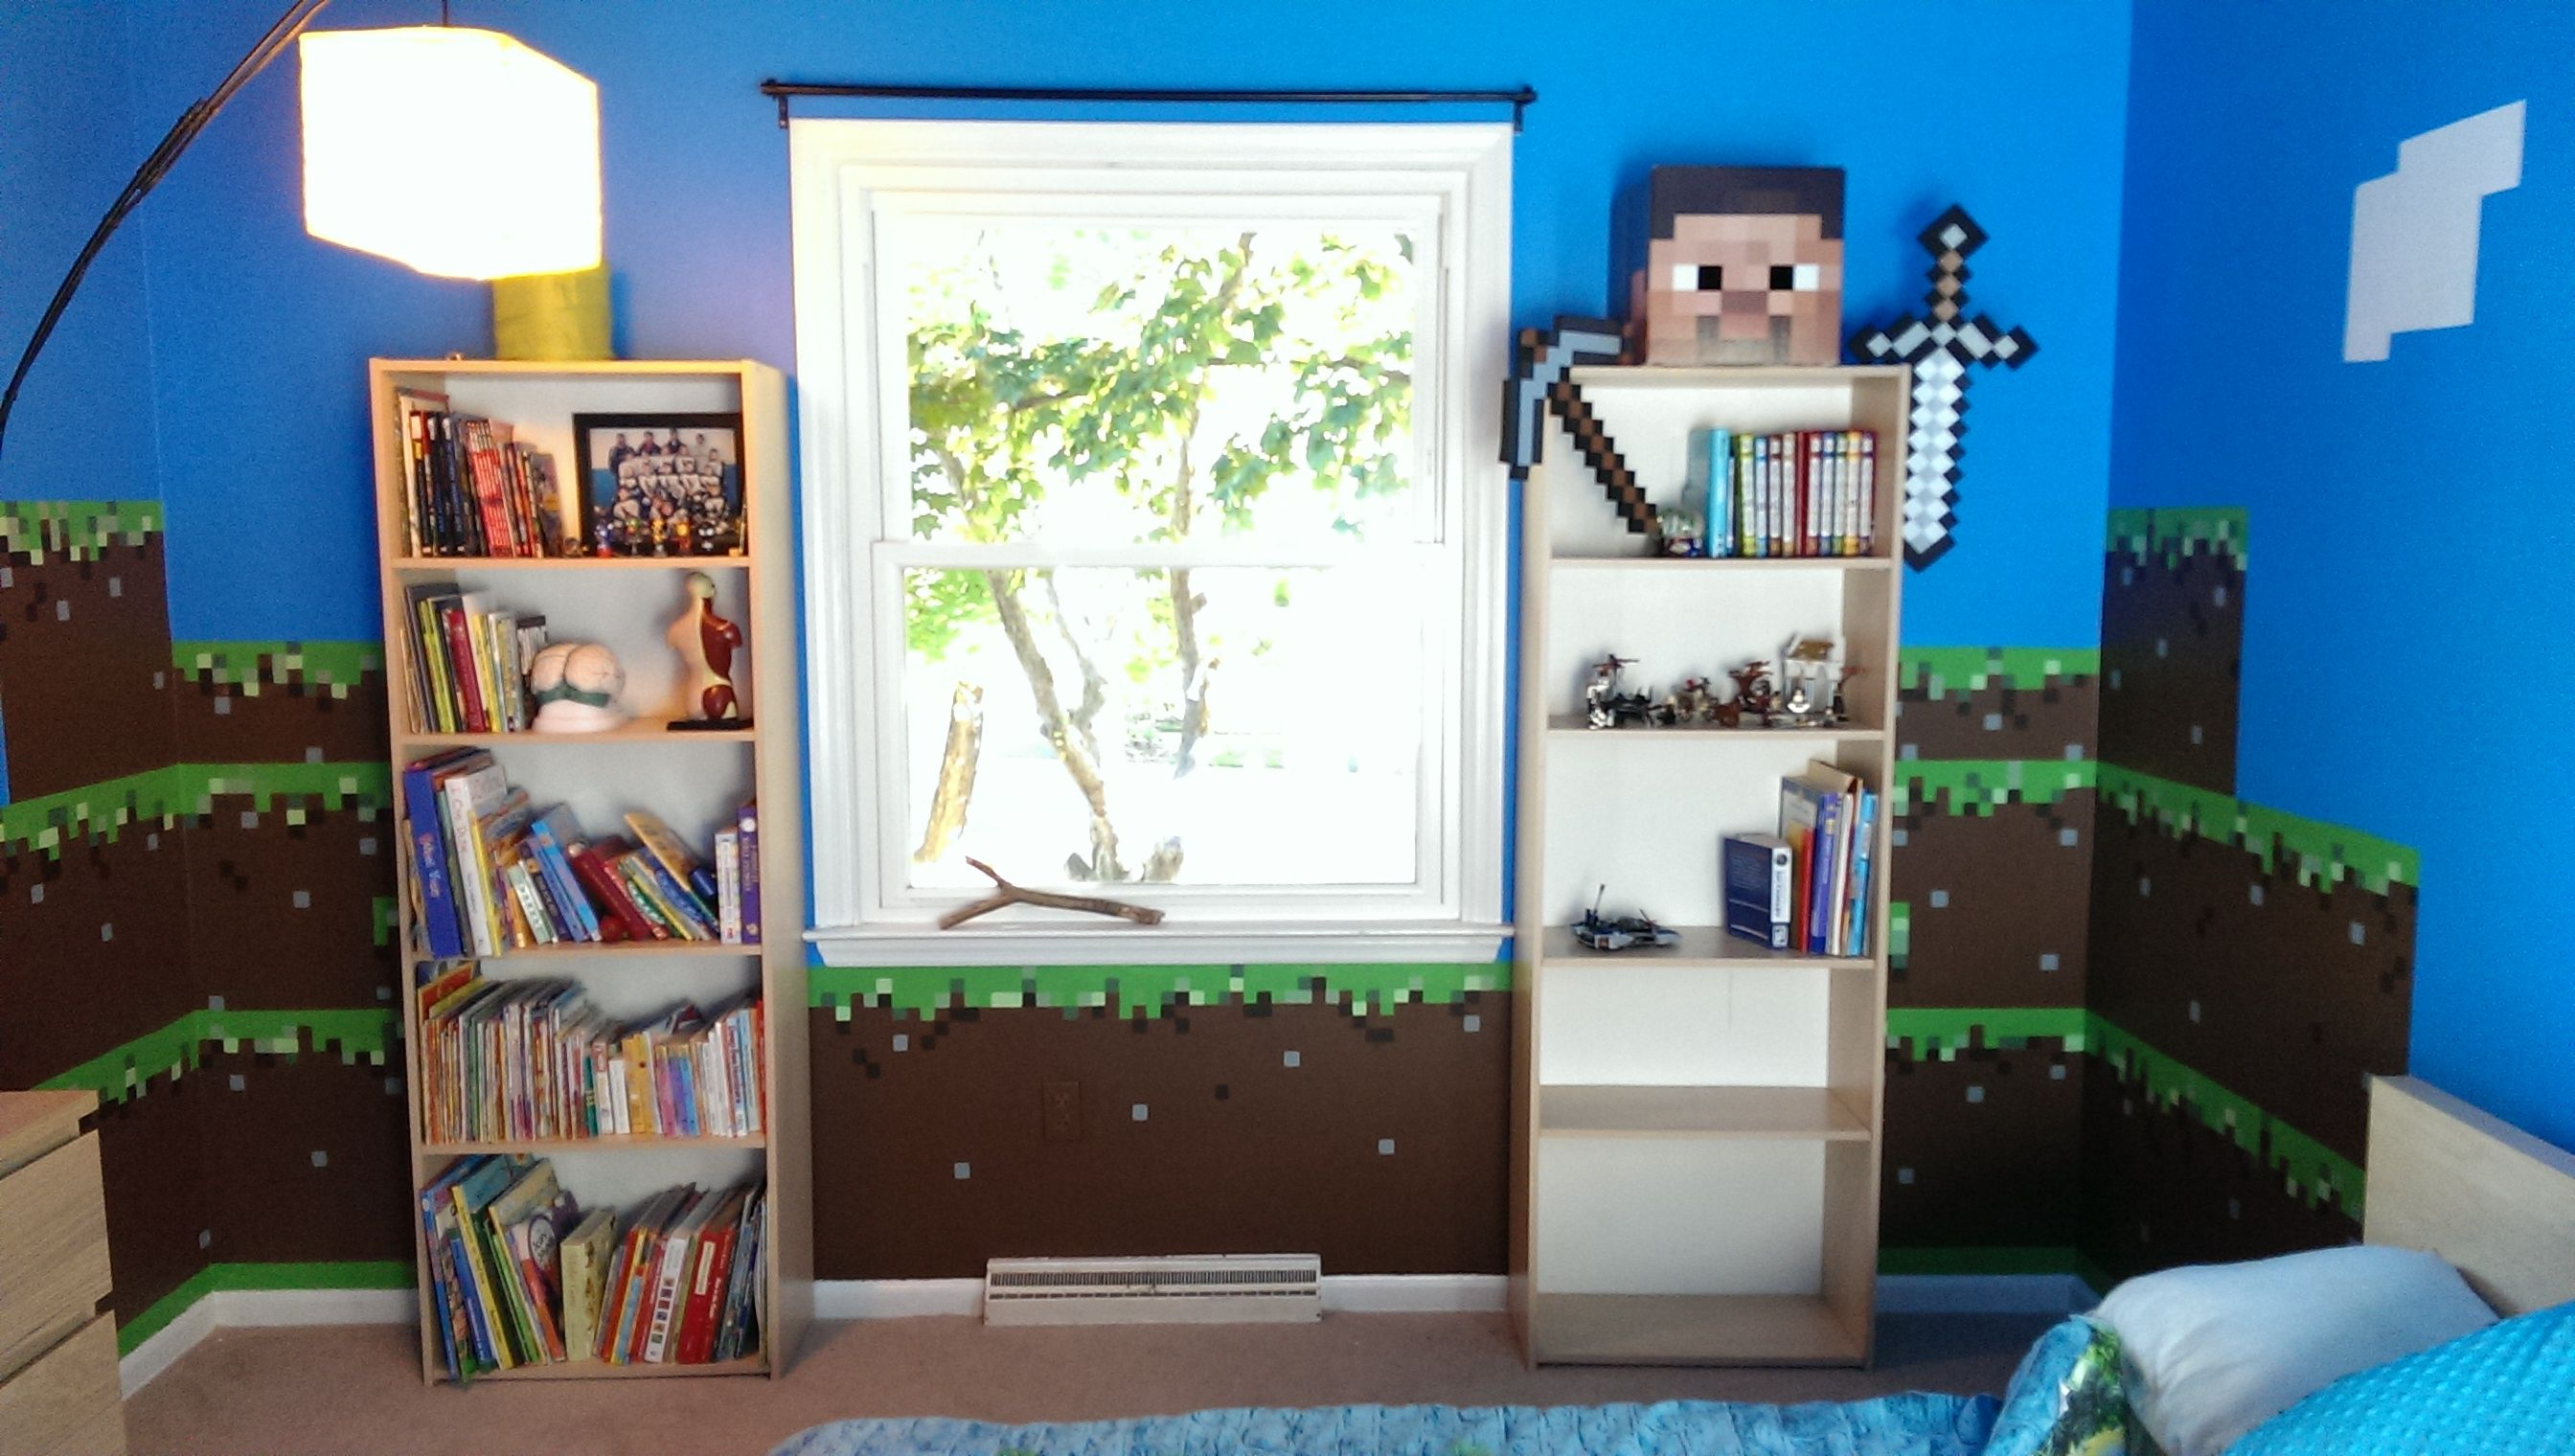 Need Ideas For Real Life Minecraft Design For Room Discussion Minecraft Discussion Minecraft Forum Minecraft Bedroom Minecraft Room Awesome Bedrooms